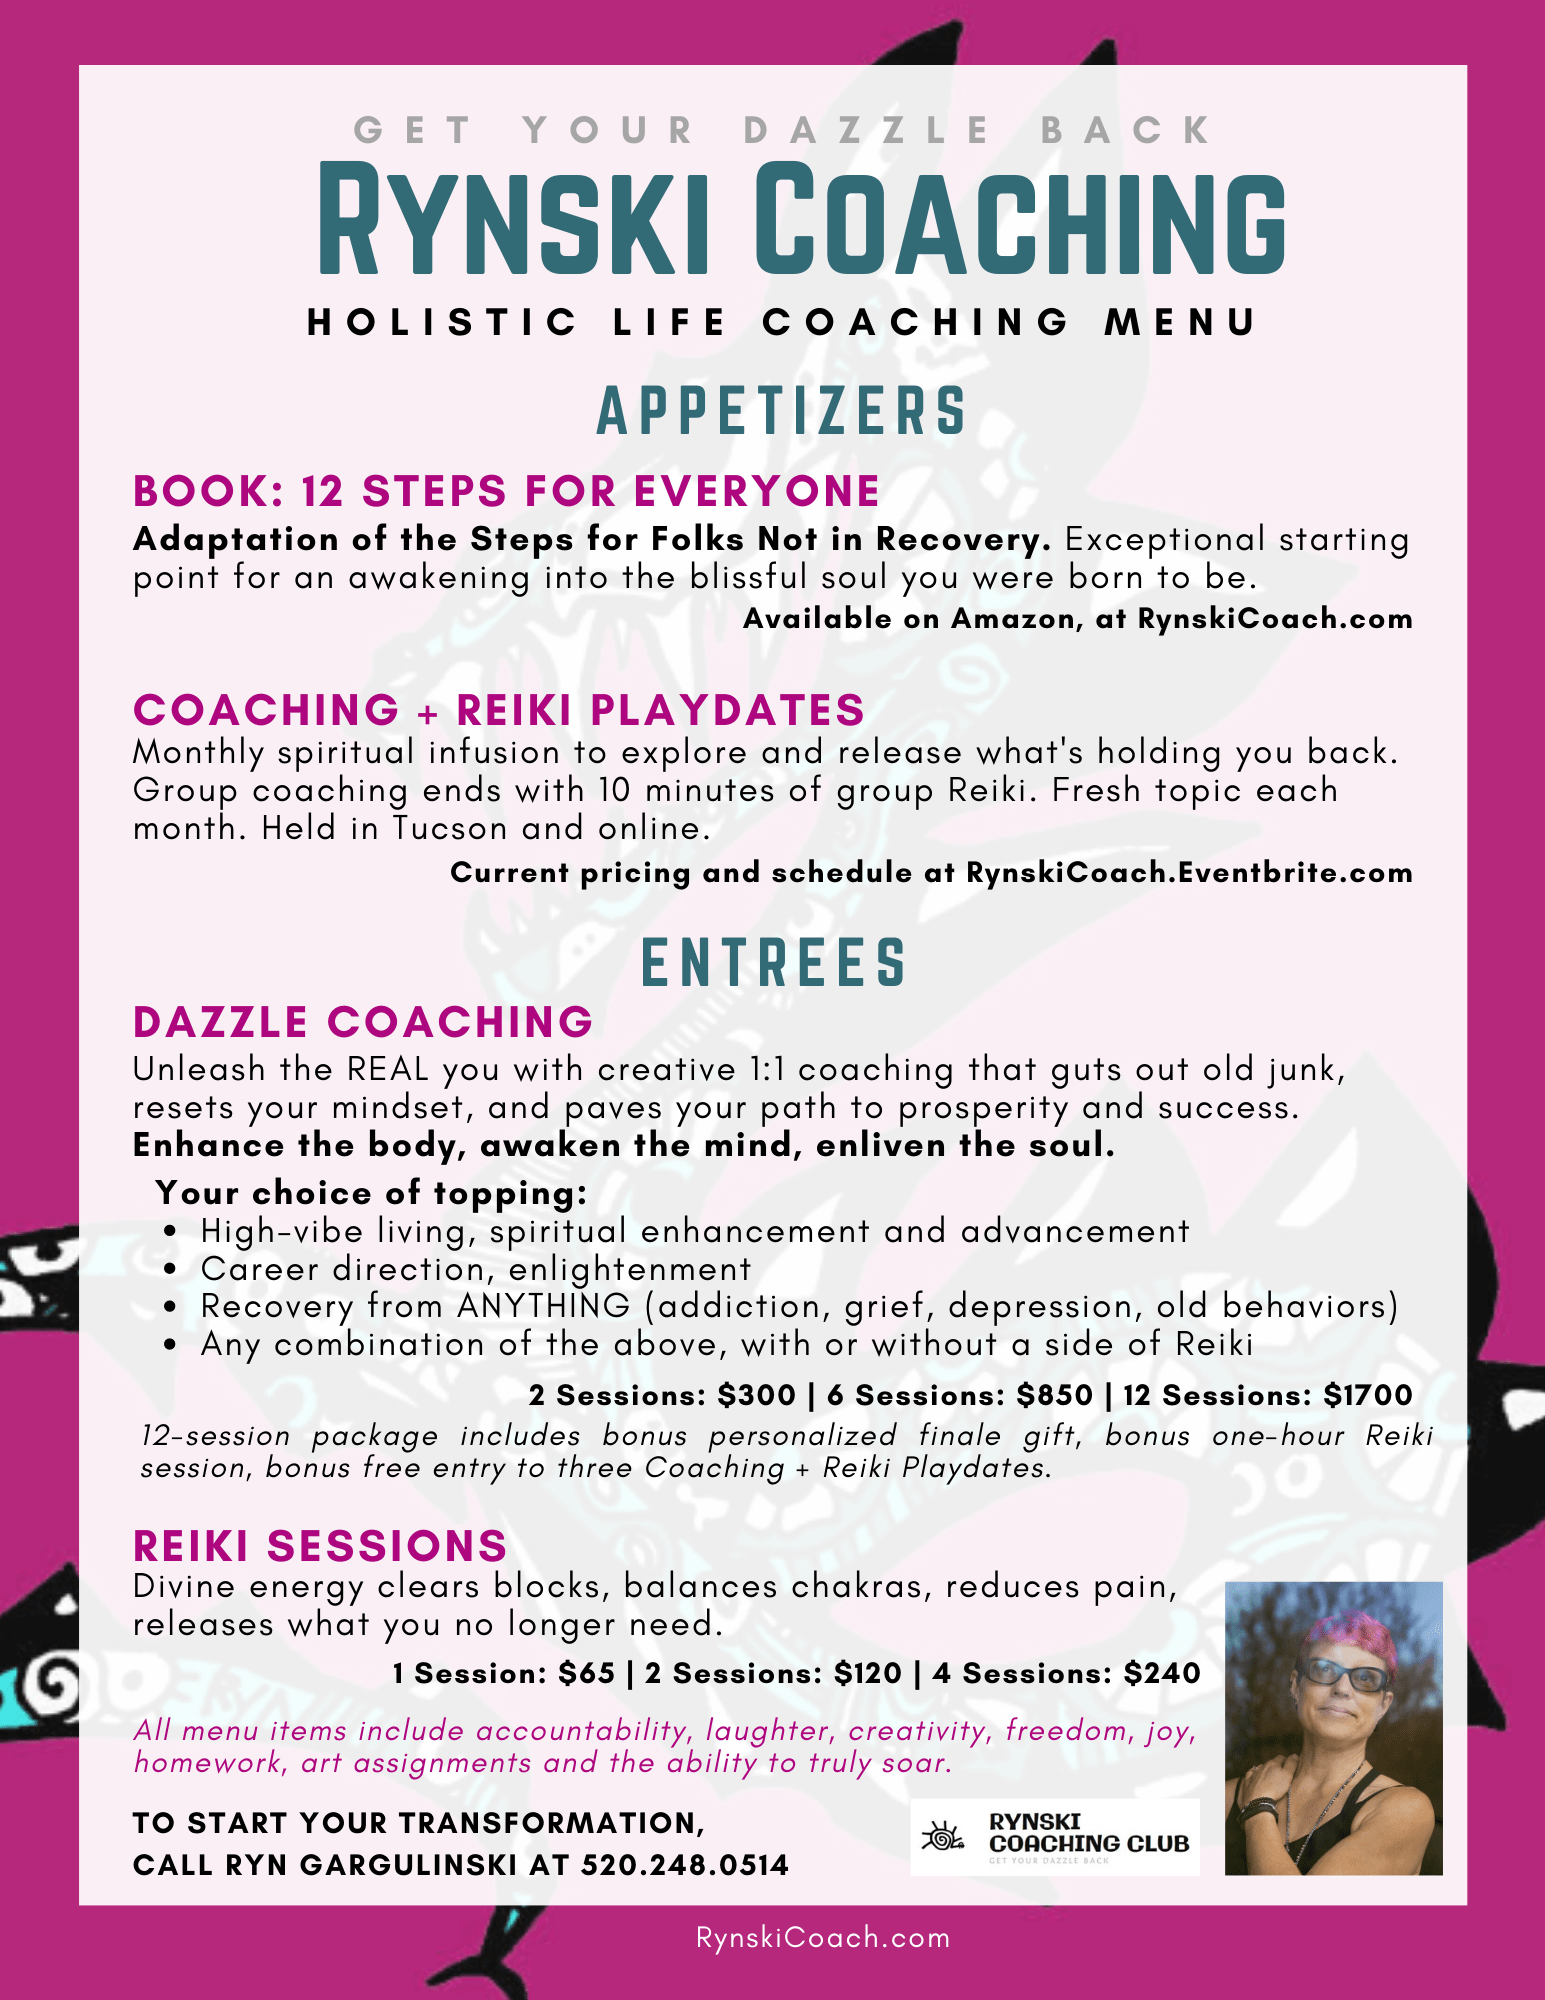 Rynski Coaching Menu